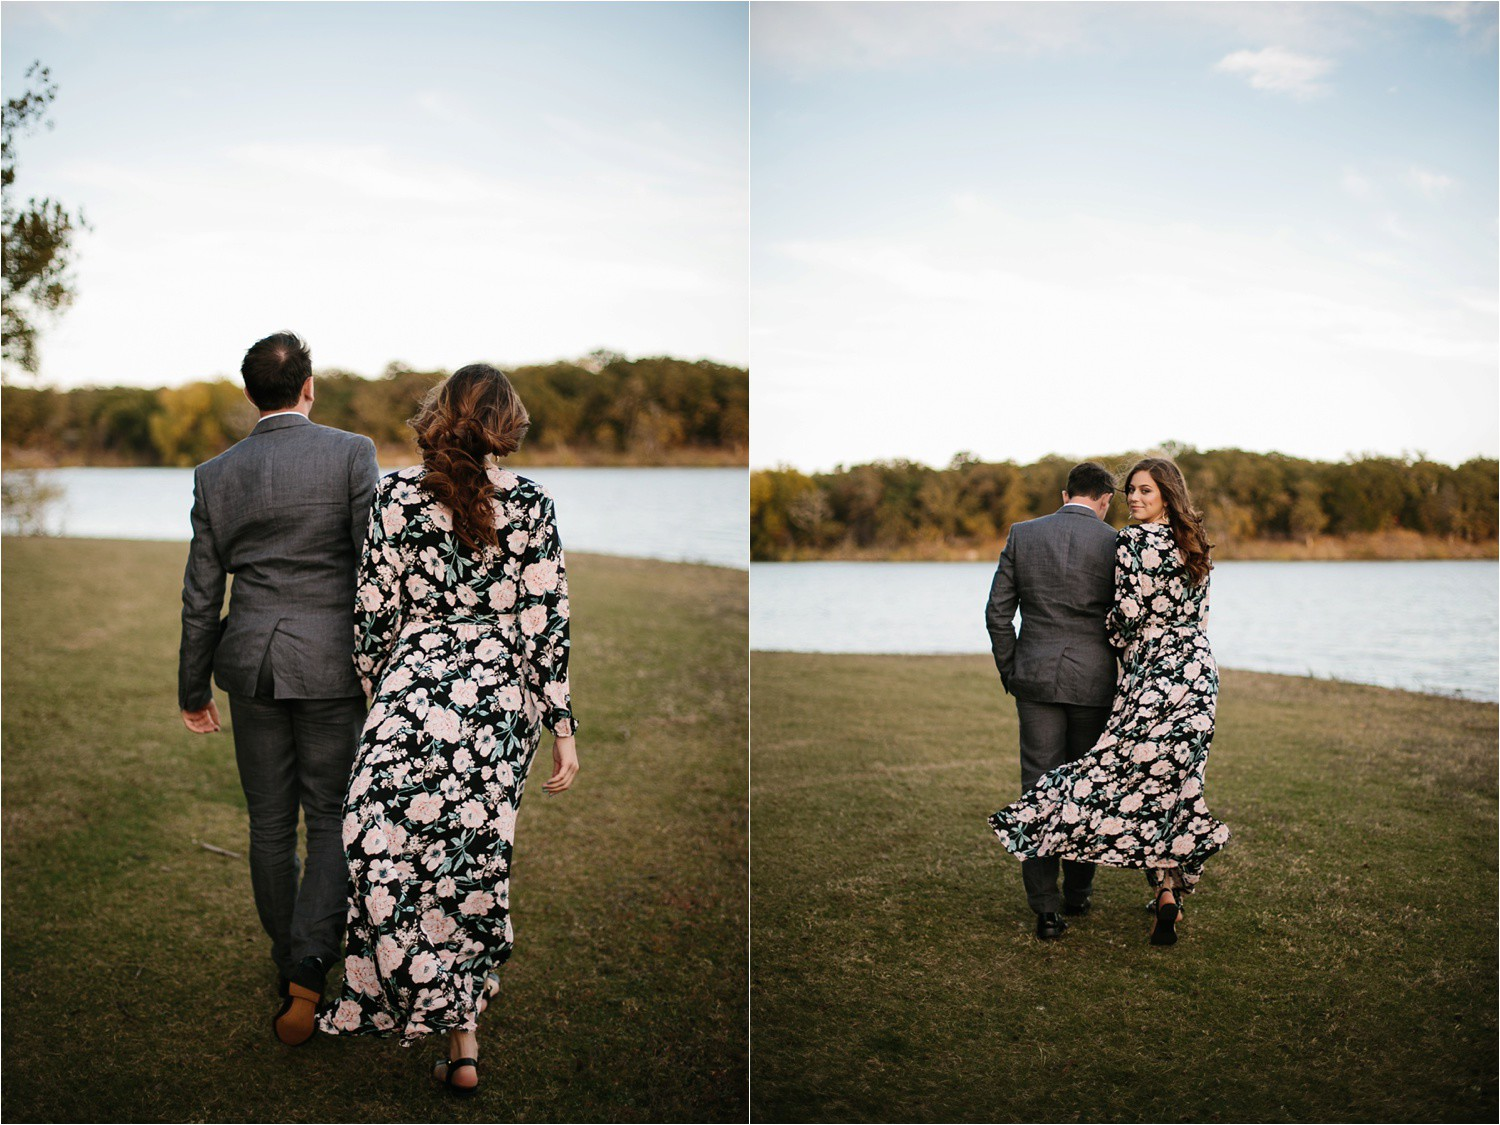 Aleta + Sabian __ a windy lakeside nature engagement session by North Texas Wedding Photographer Rachel Meagan Photography _16